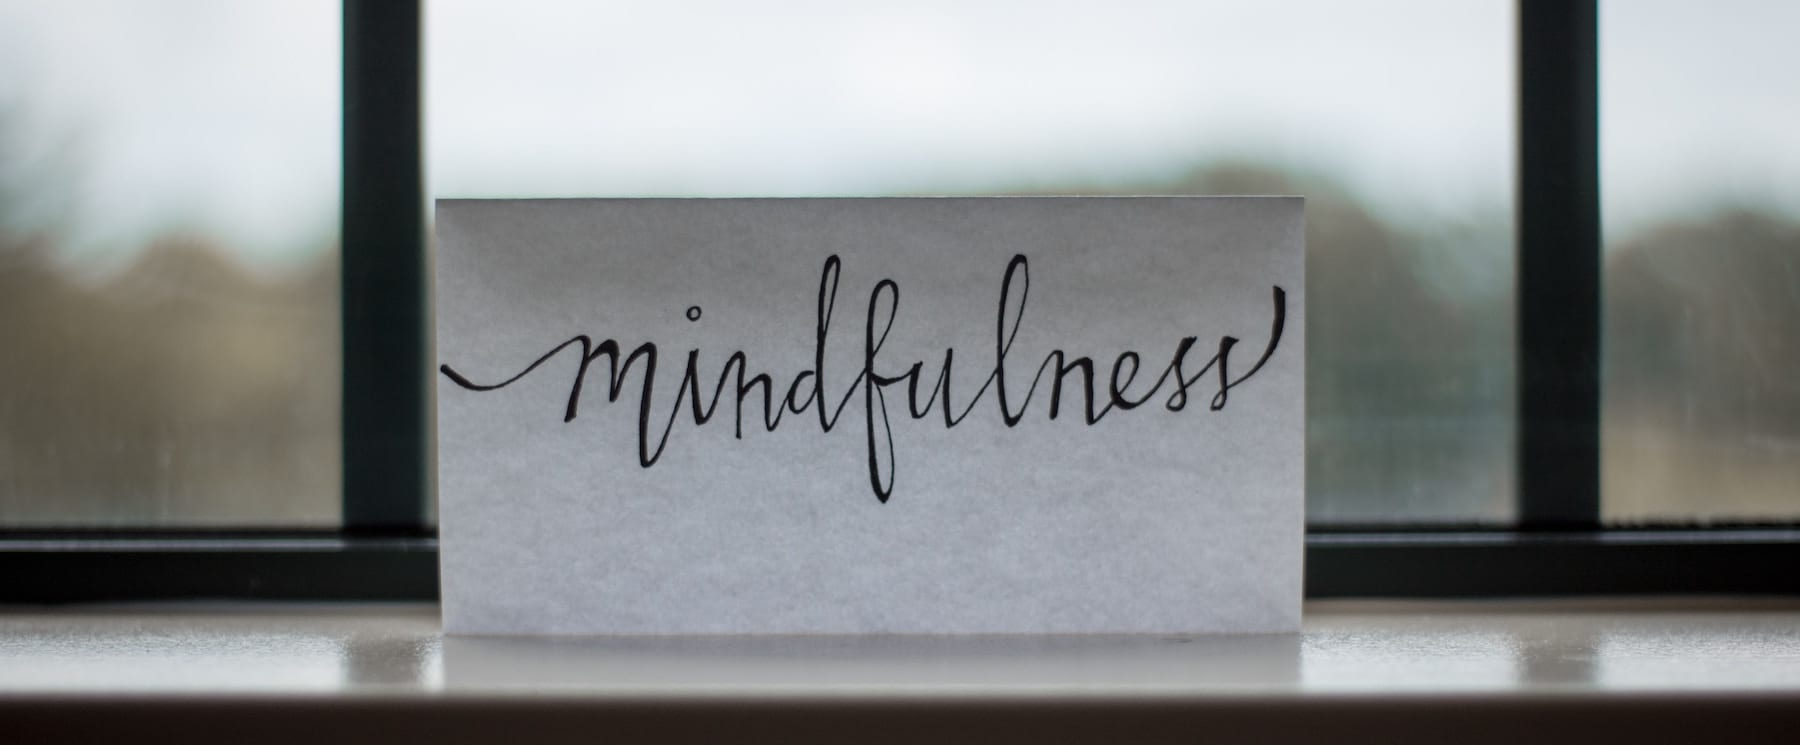 Card with Mindfulness Written on it in script